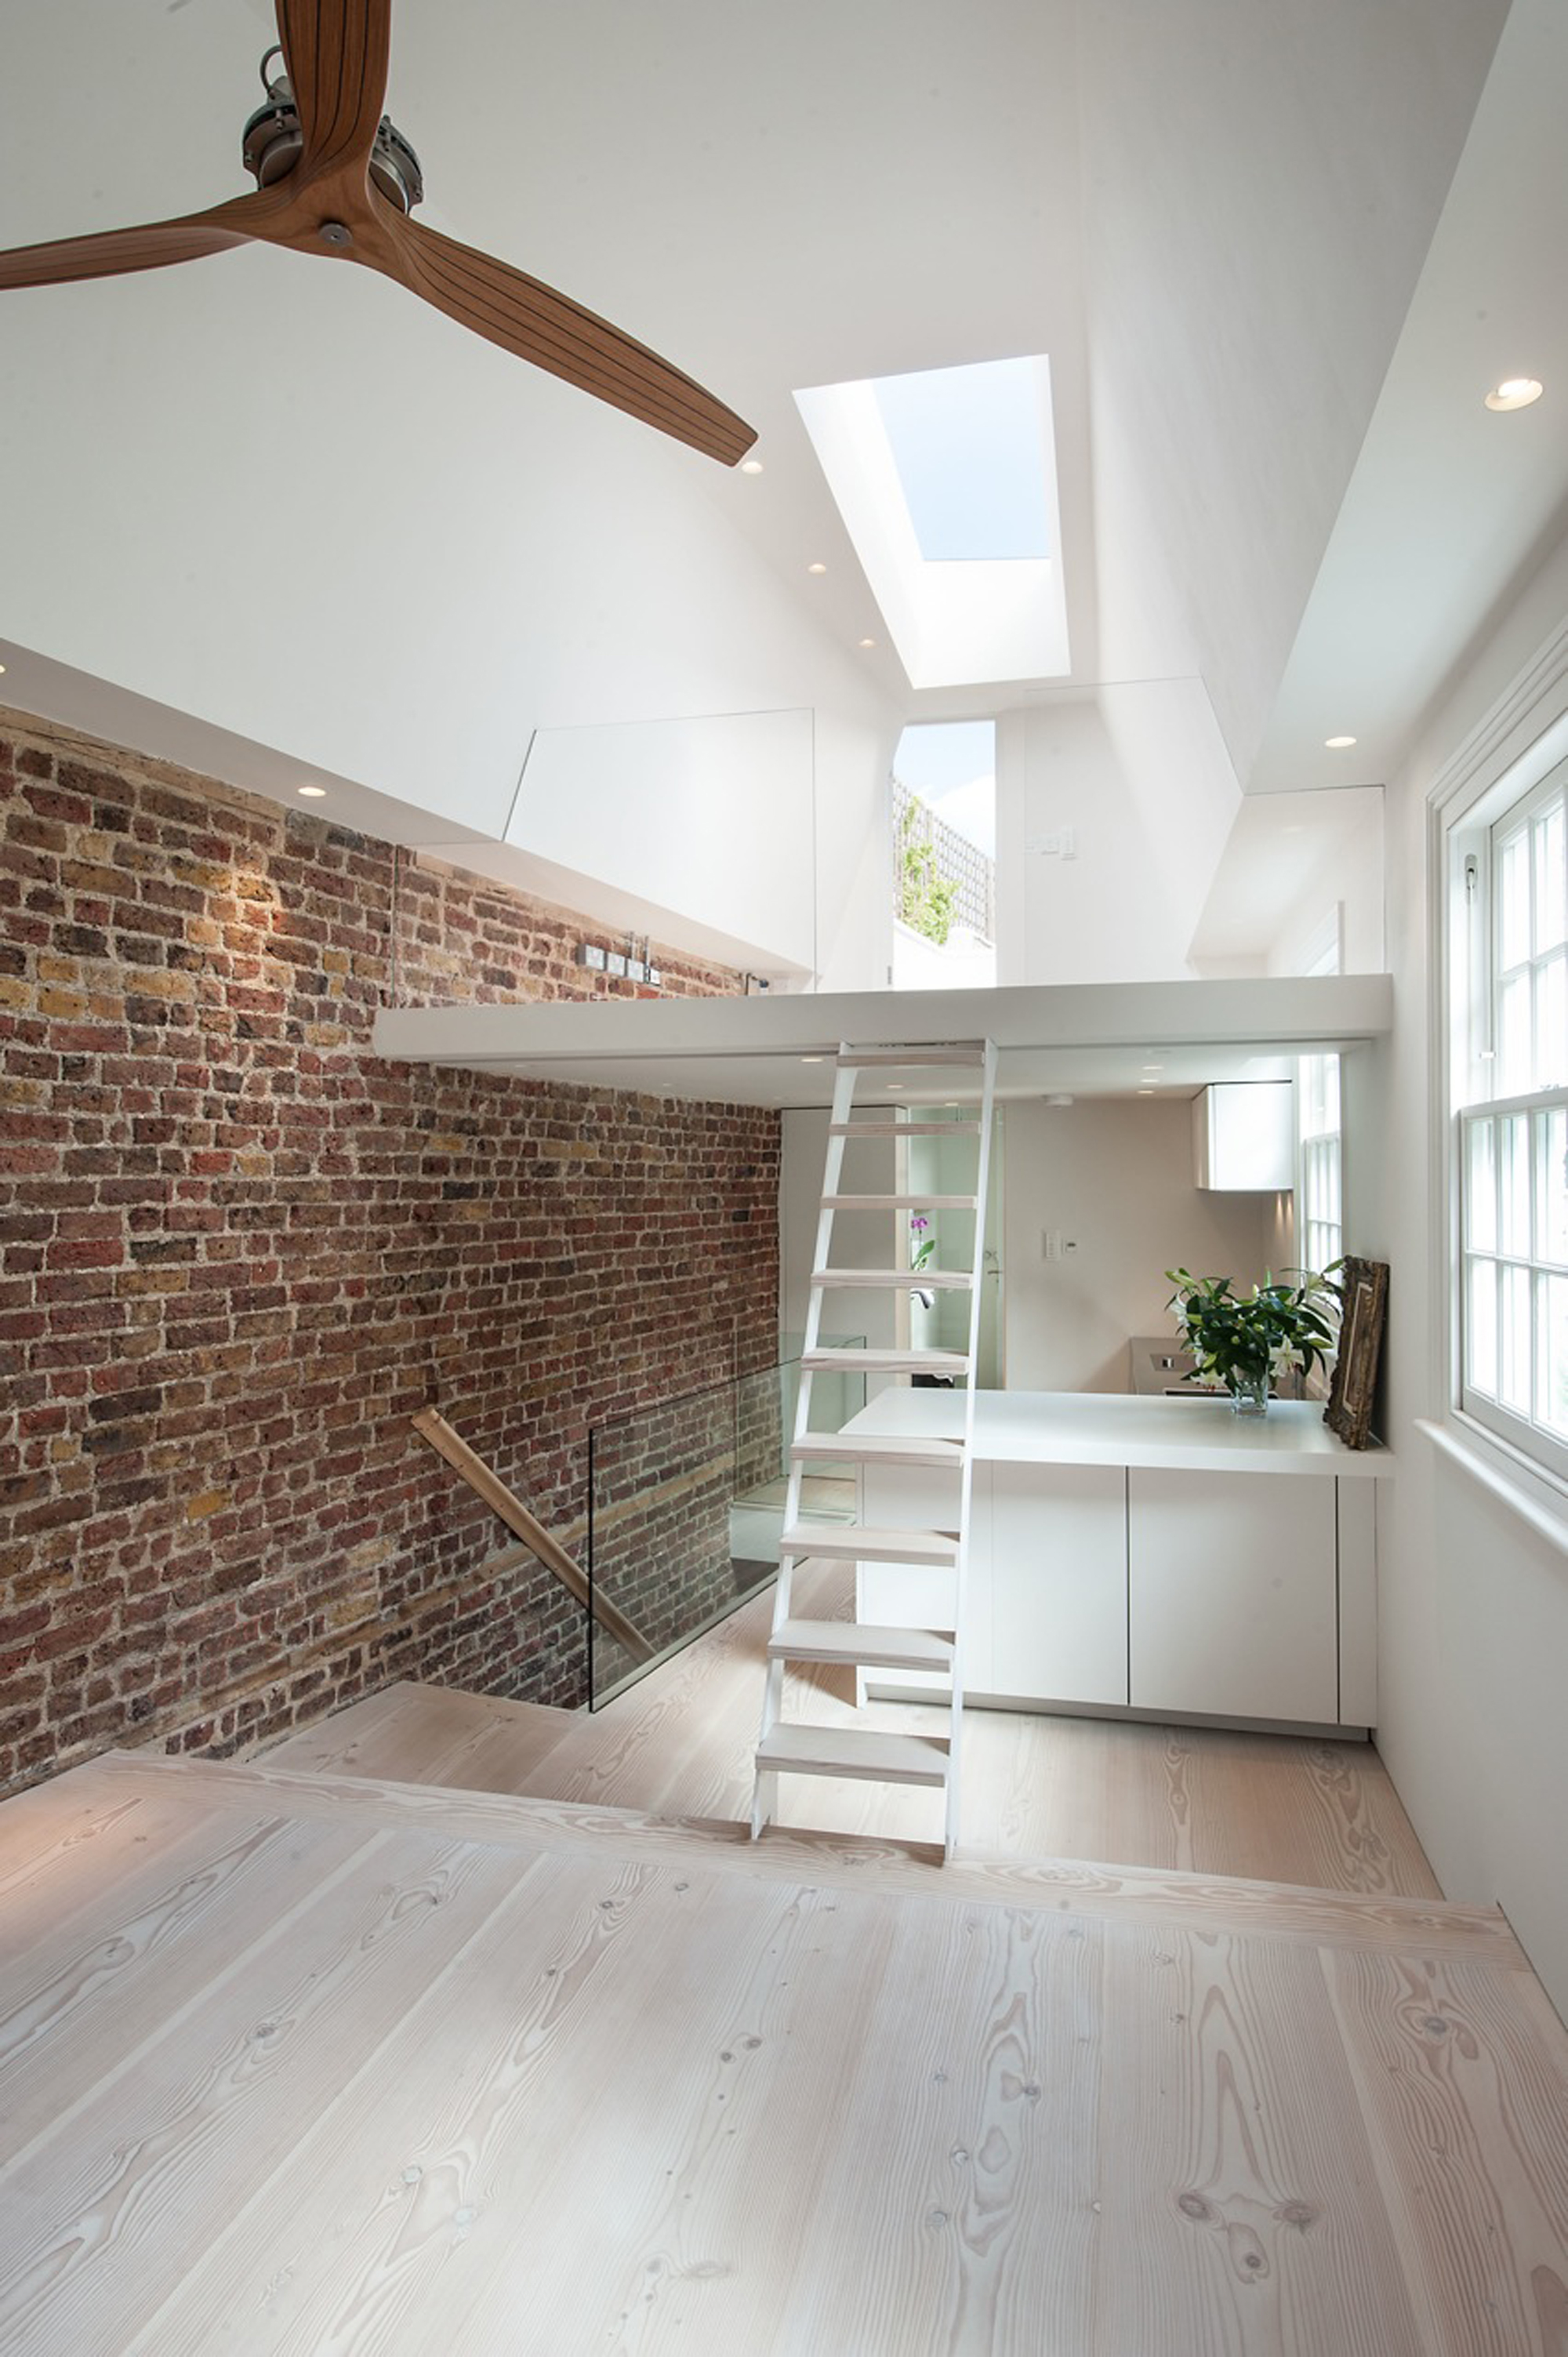 creativemass - basement extension, internal remodelling, sky light, mews house, London, Dinesen wood, ladder, mezzanine, roof top terrace